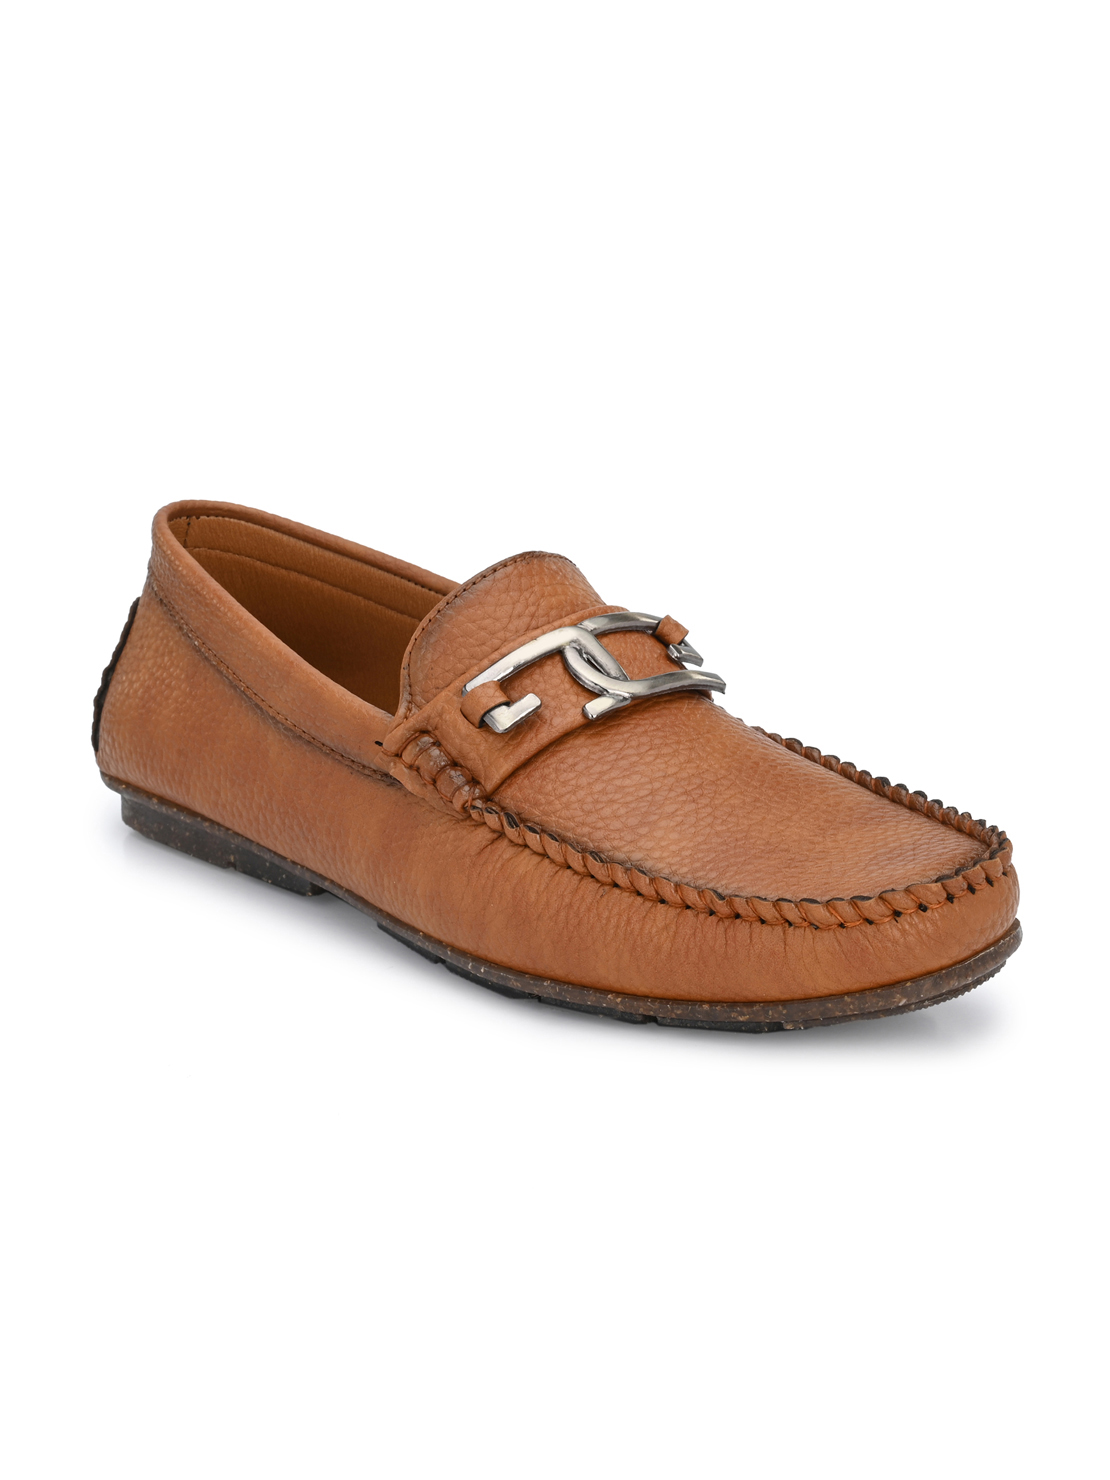 Guava | Guava Men's Driving Loafers Shoes - Dark Tan